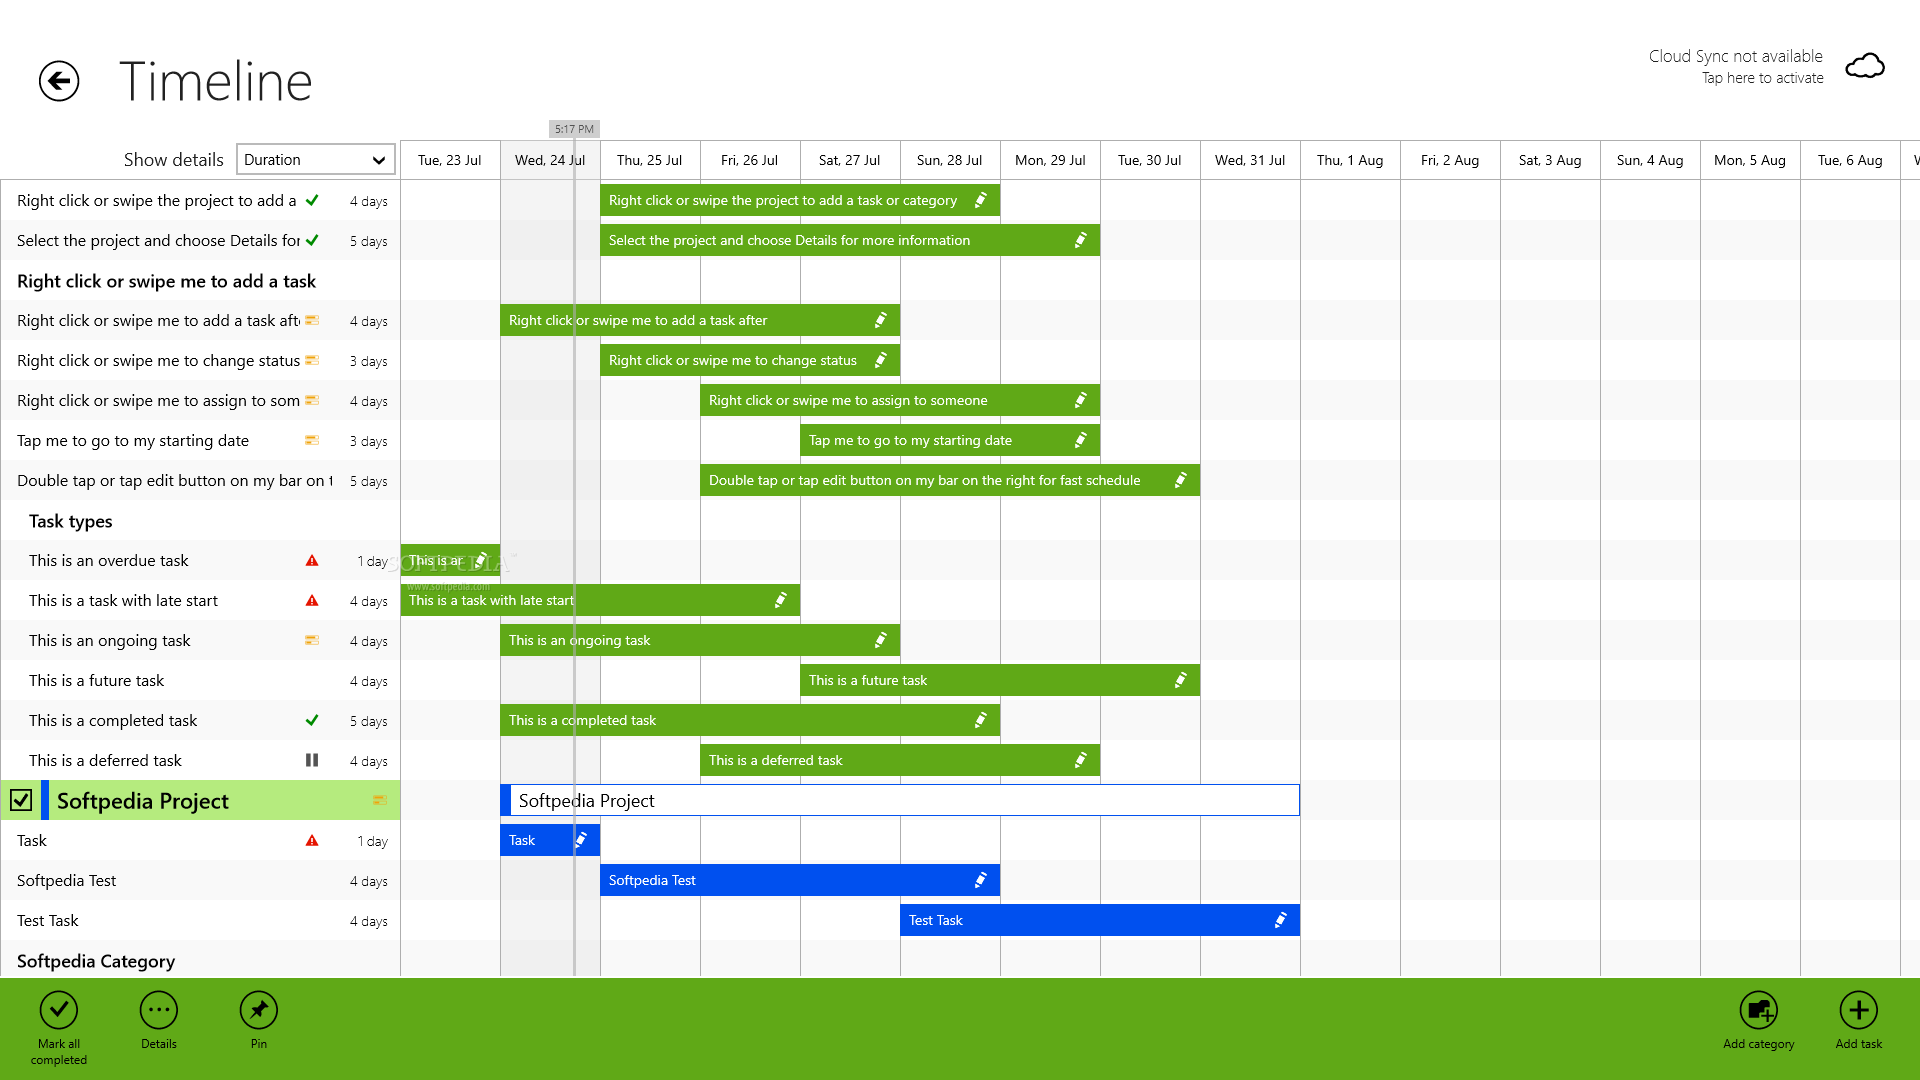 Project Timeline for Windows 8 - screenshot #4